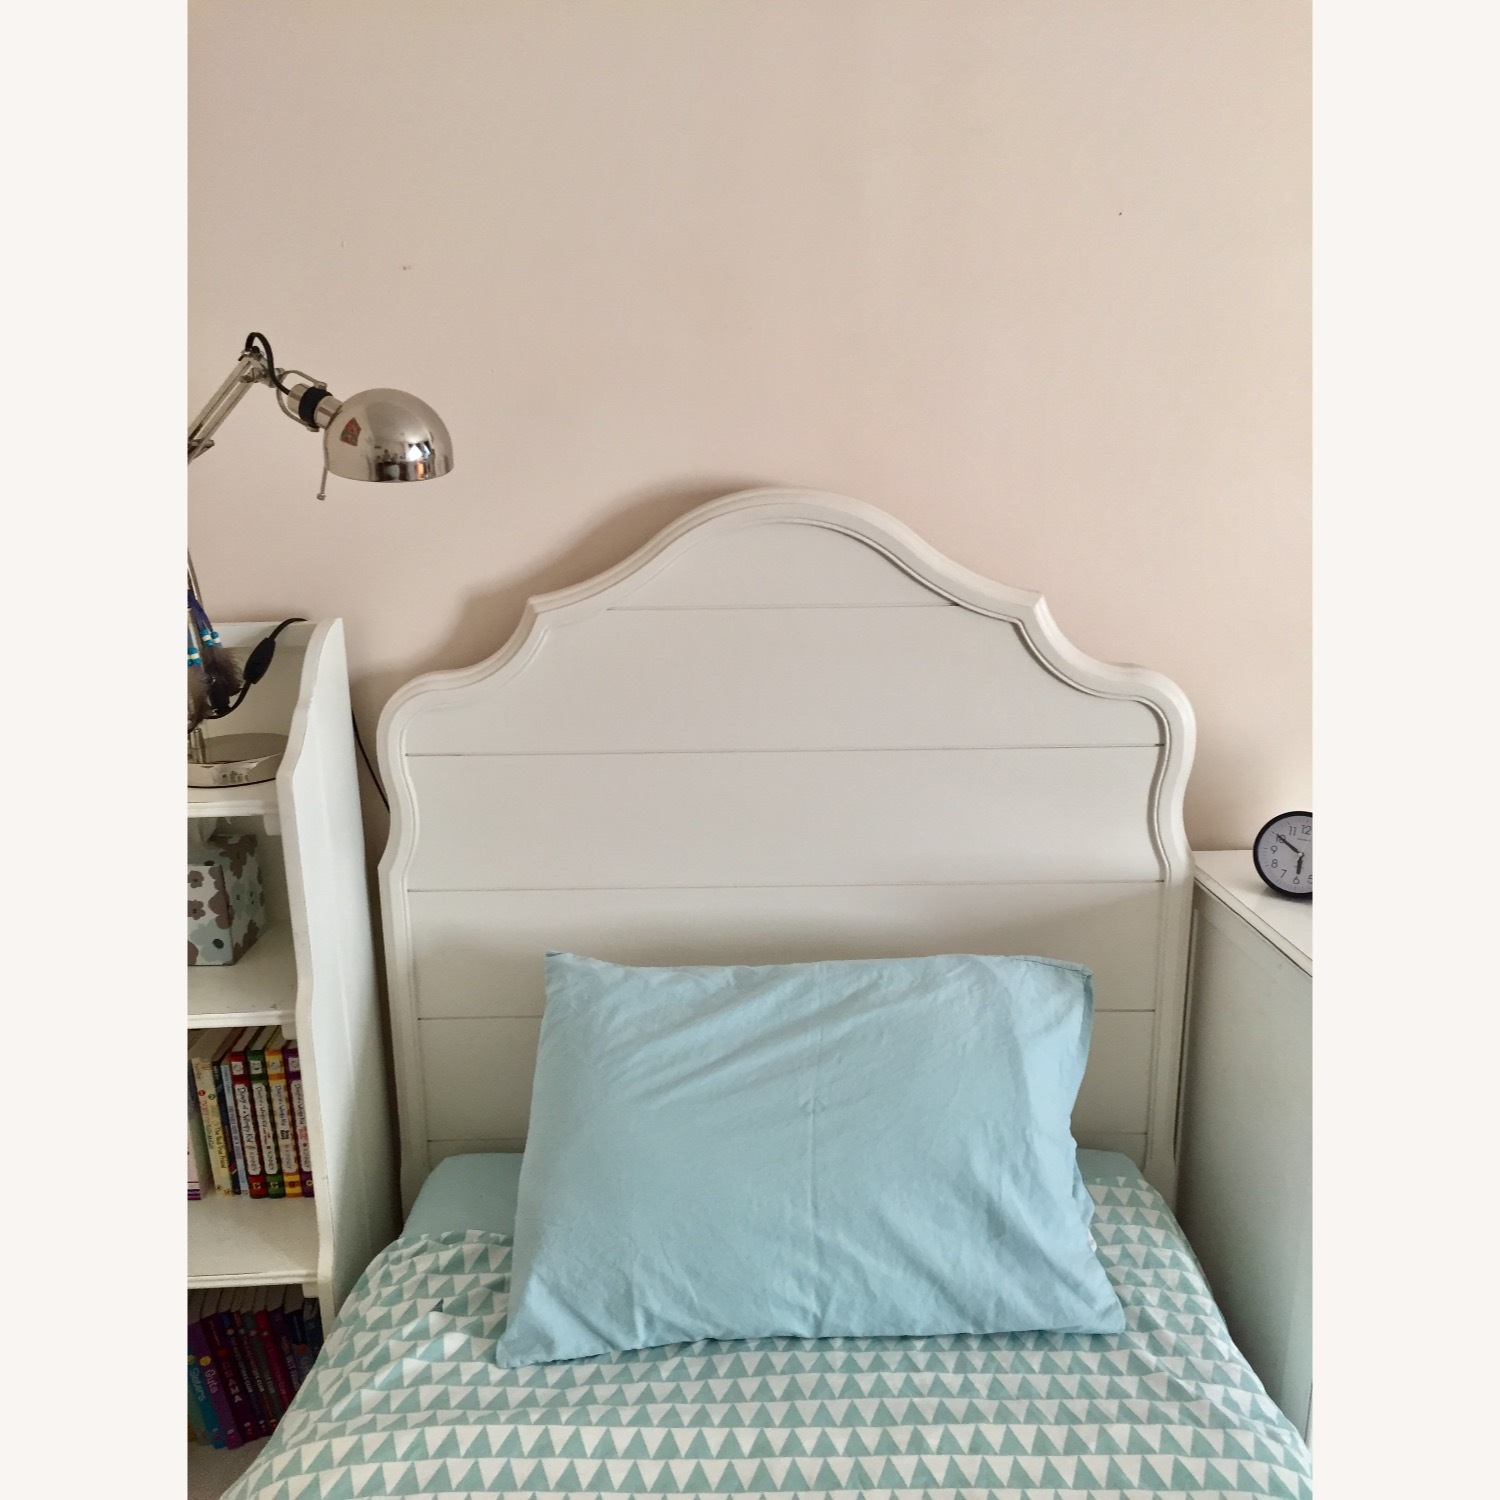 Pottery Barn Twin Bed - Juliette Collection - image-3